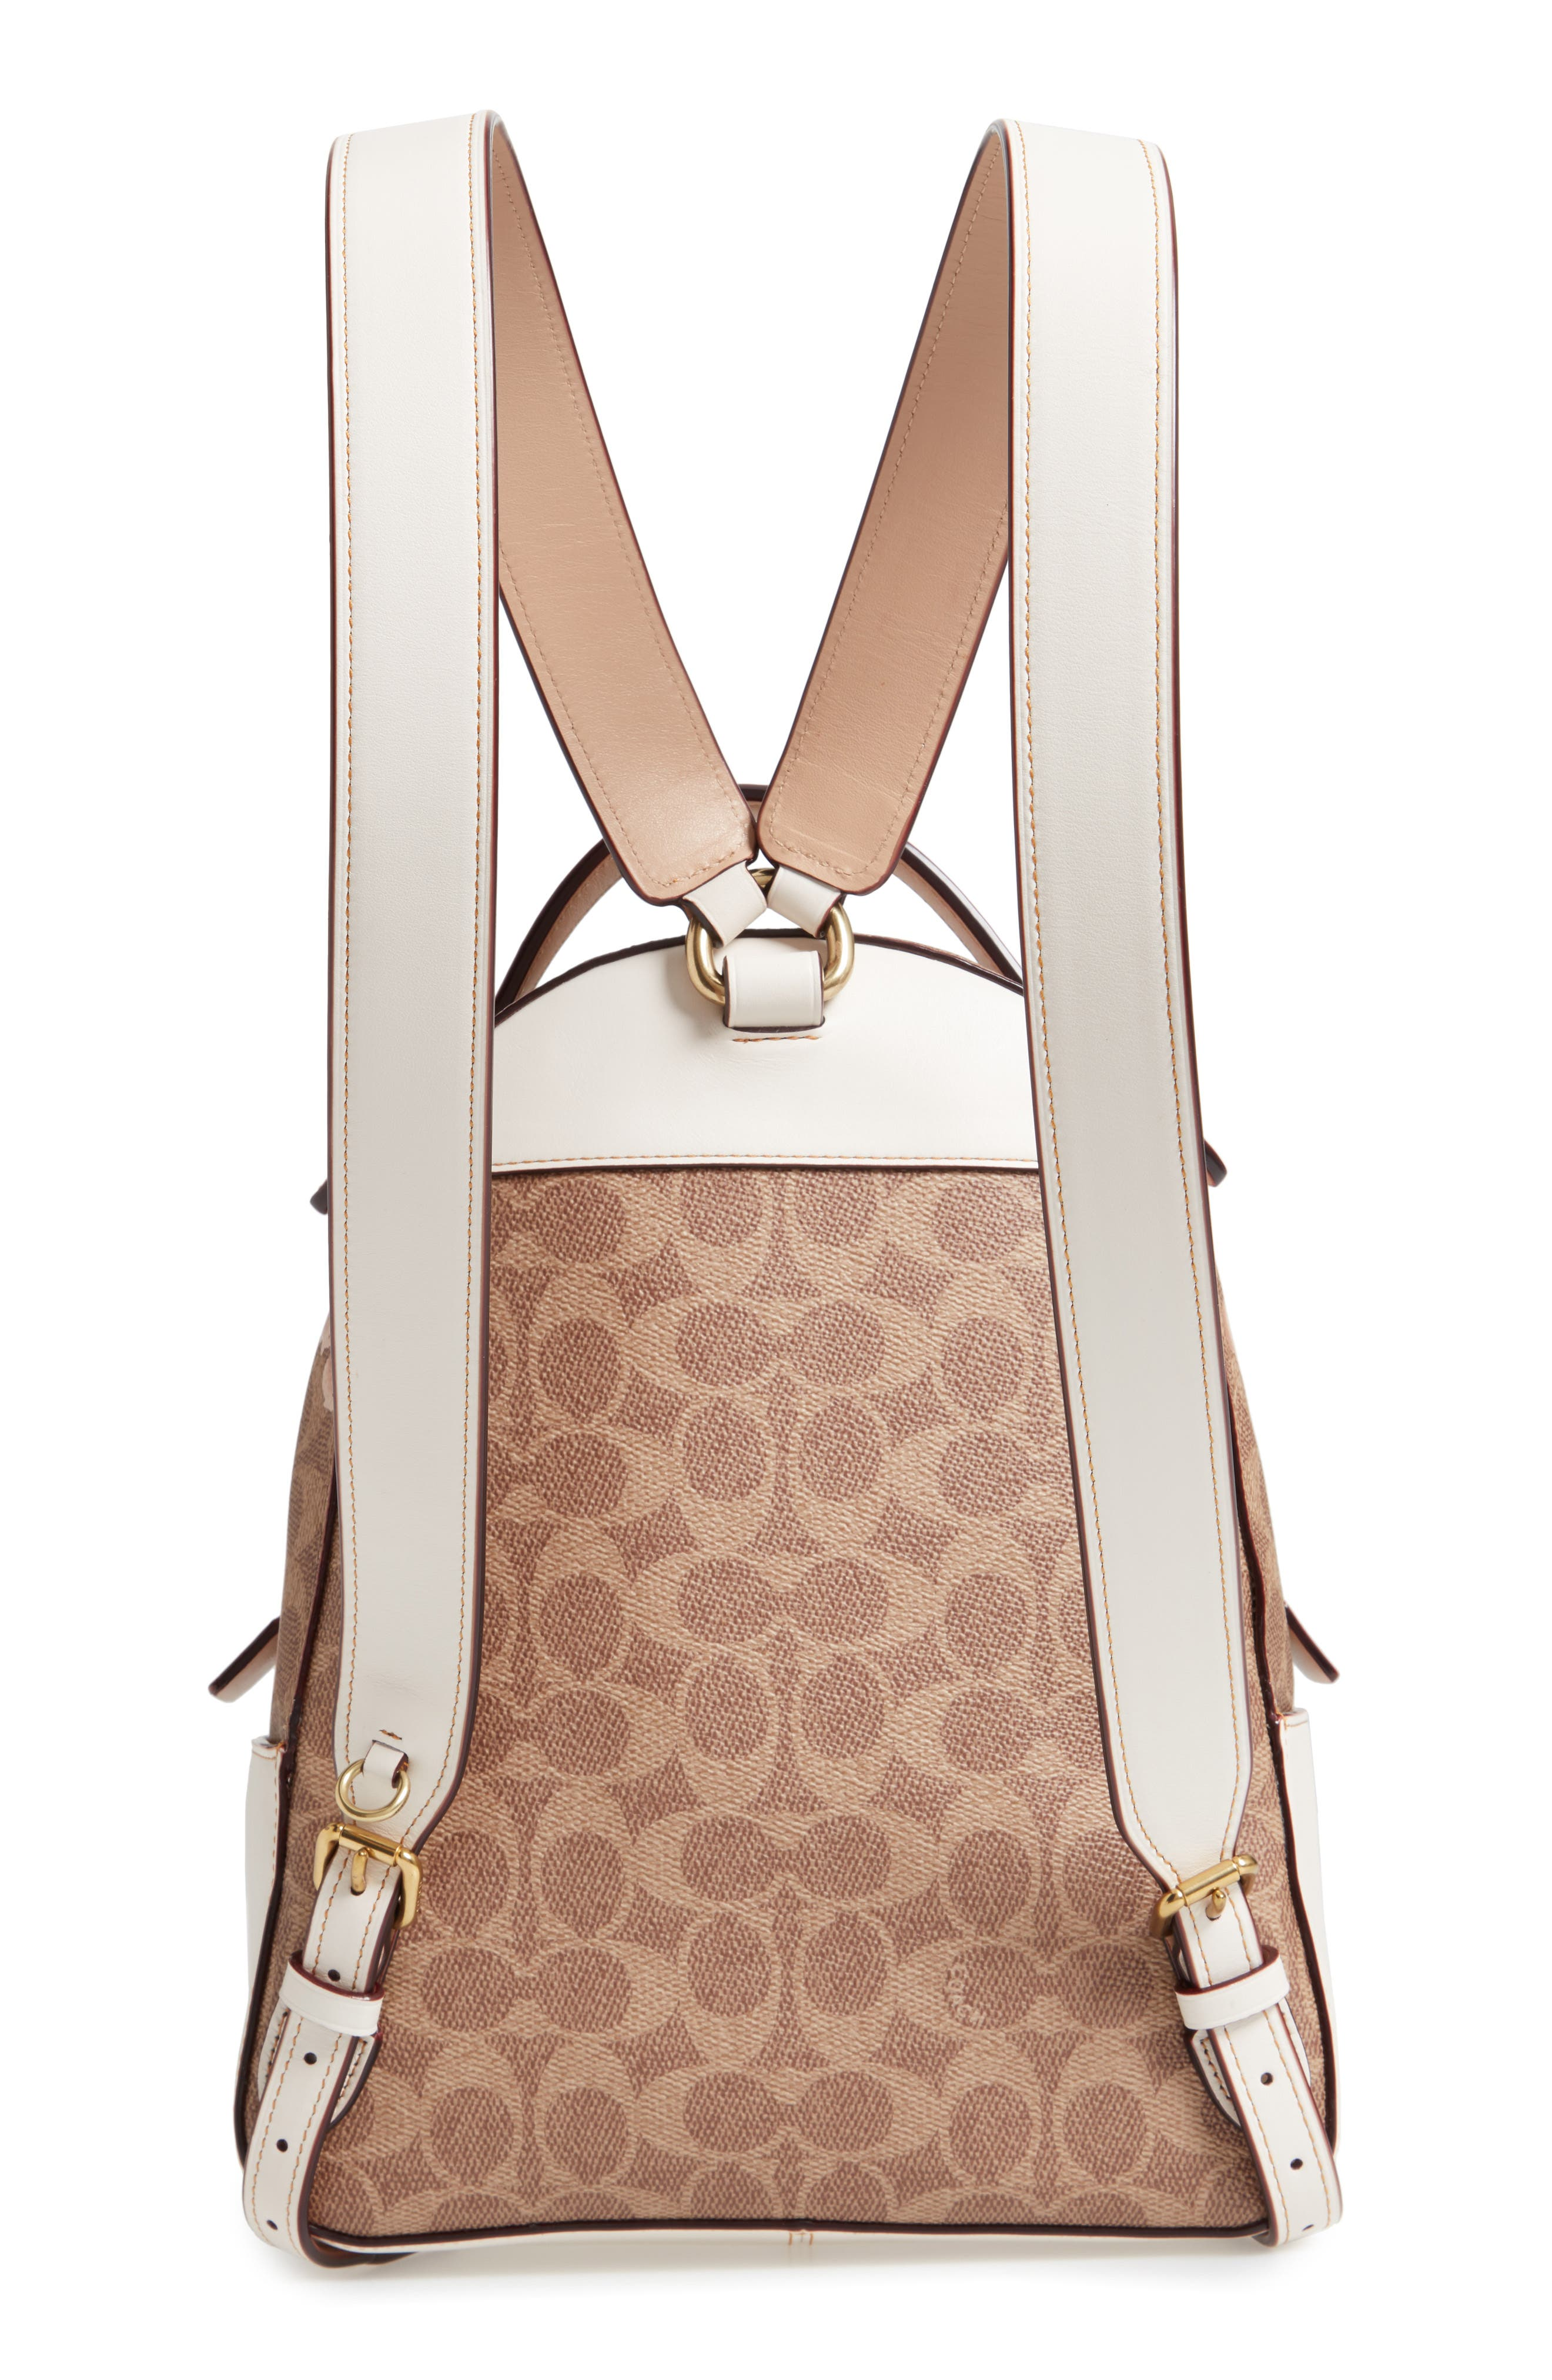 COACH,                             Campus Signature Rose Coated Canvas Backpack,                             Alternate thumbnail 3, color,                             250